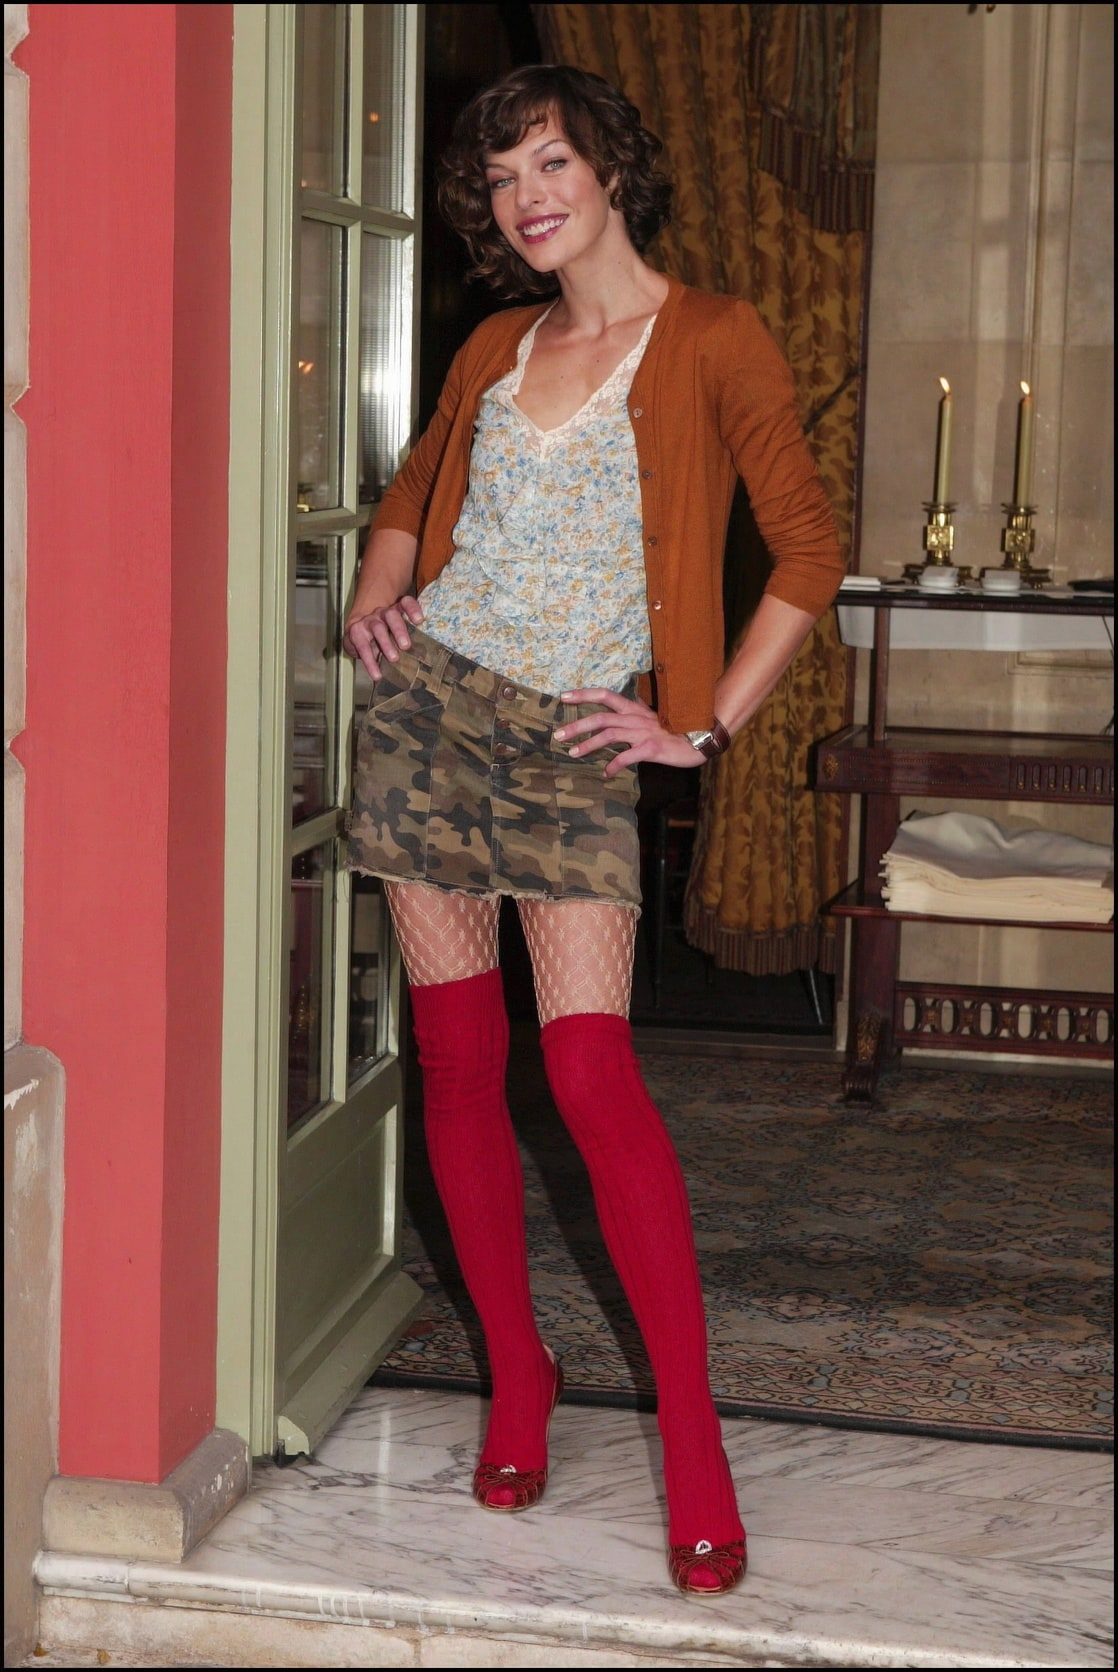 Opinion milla jovovich pantyhose have removed